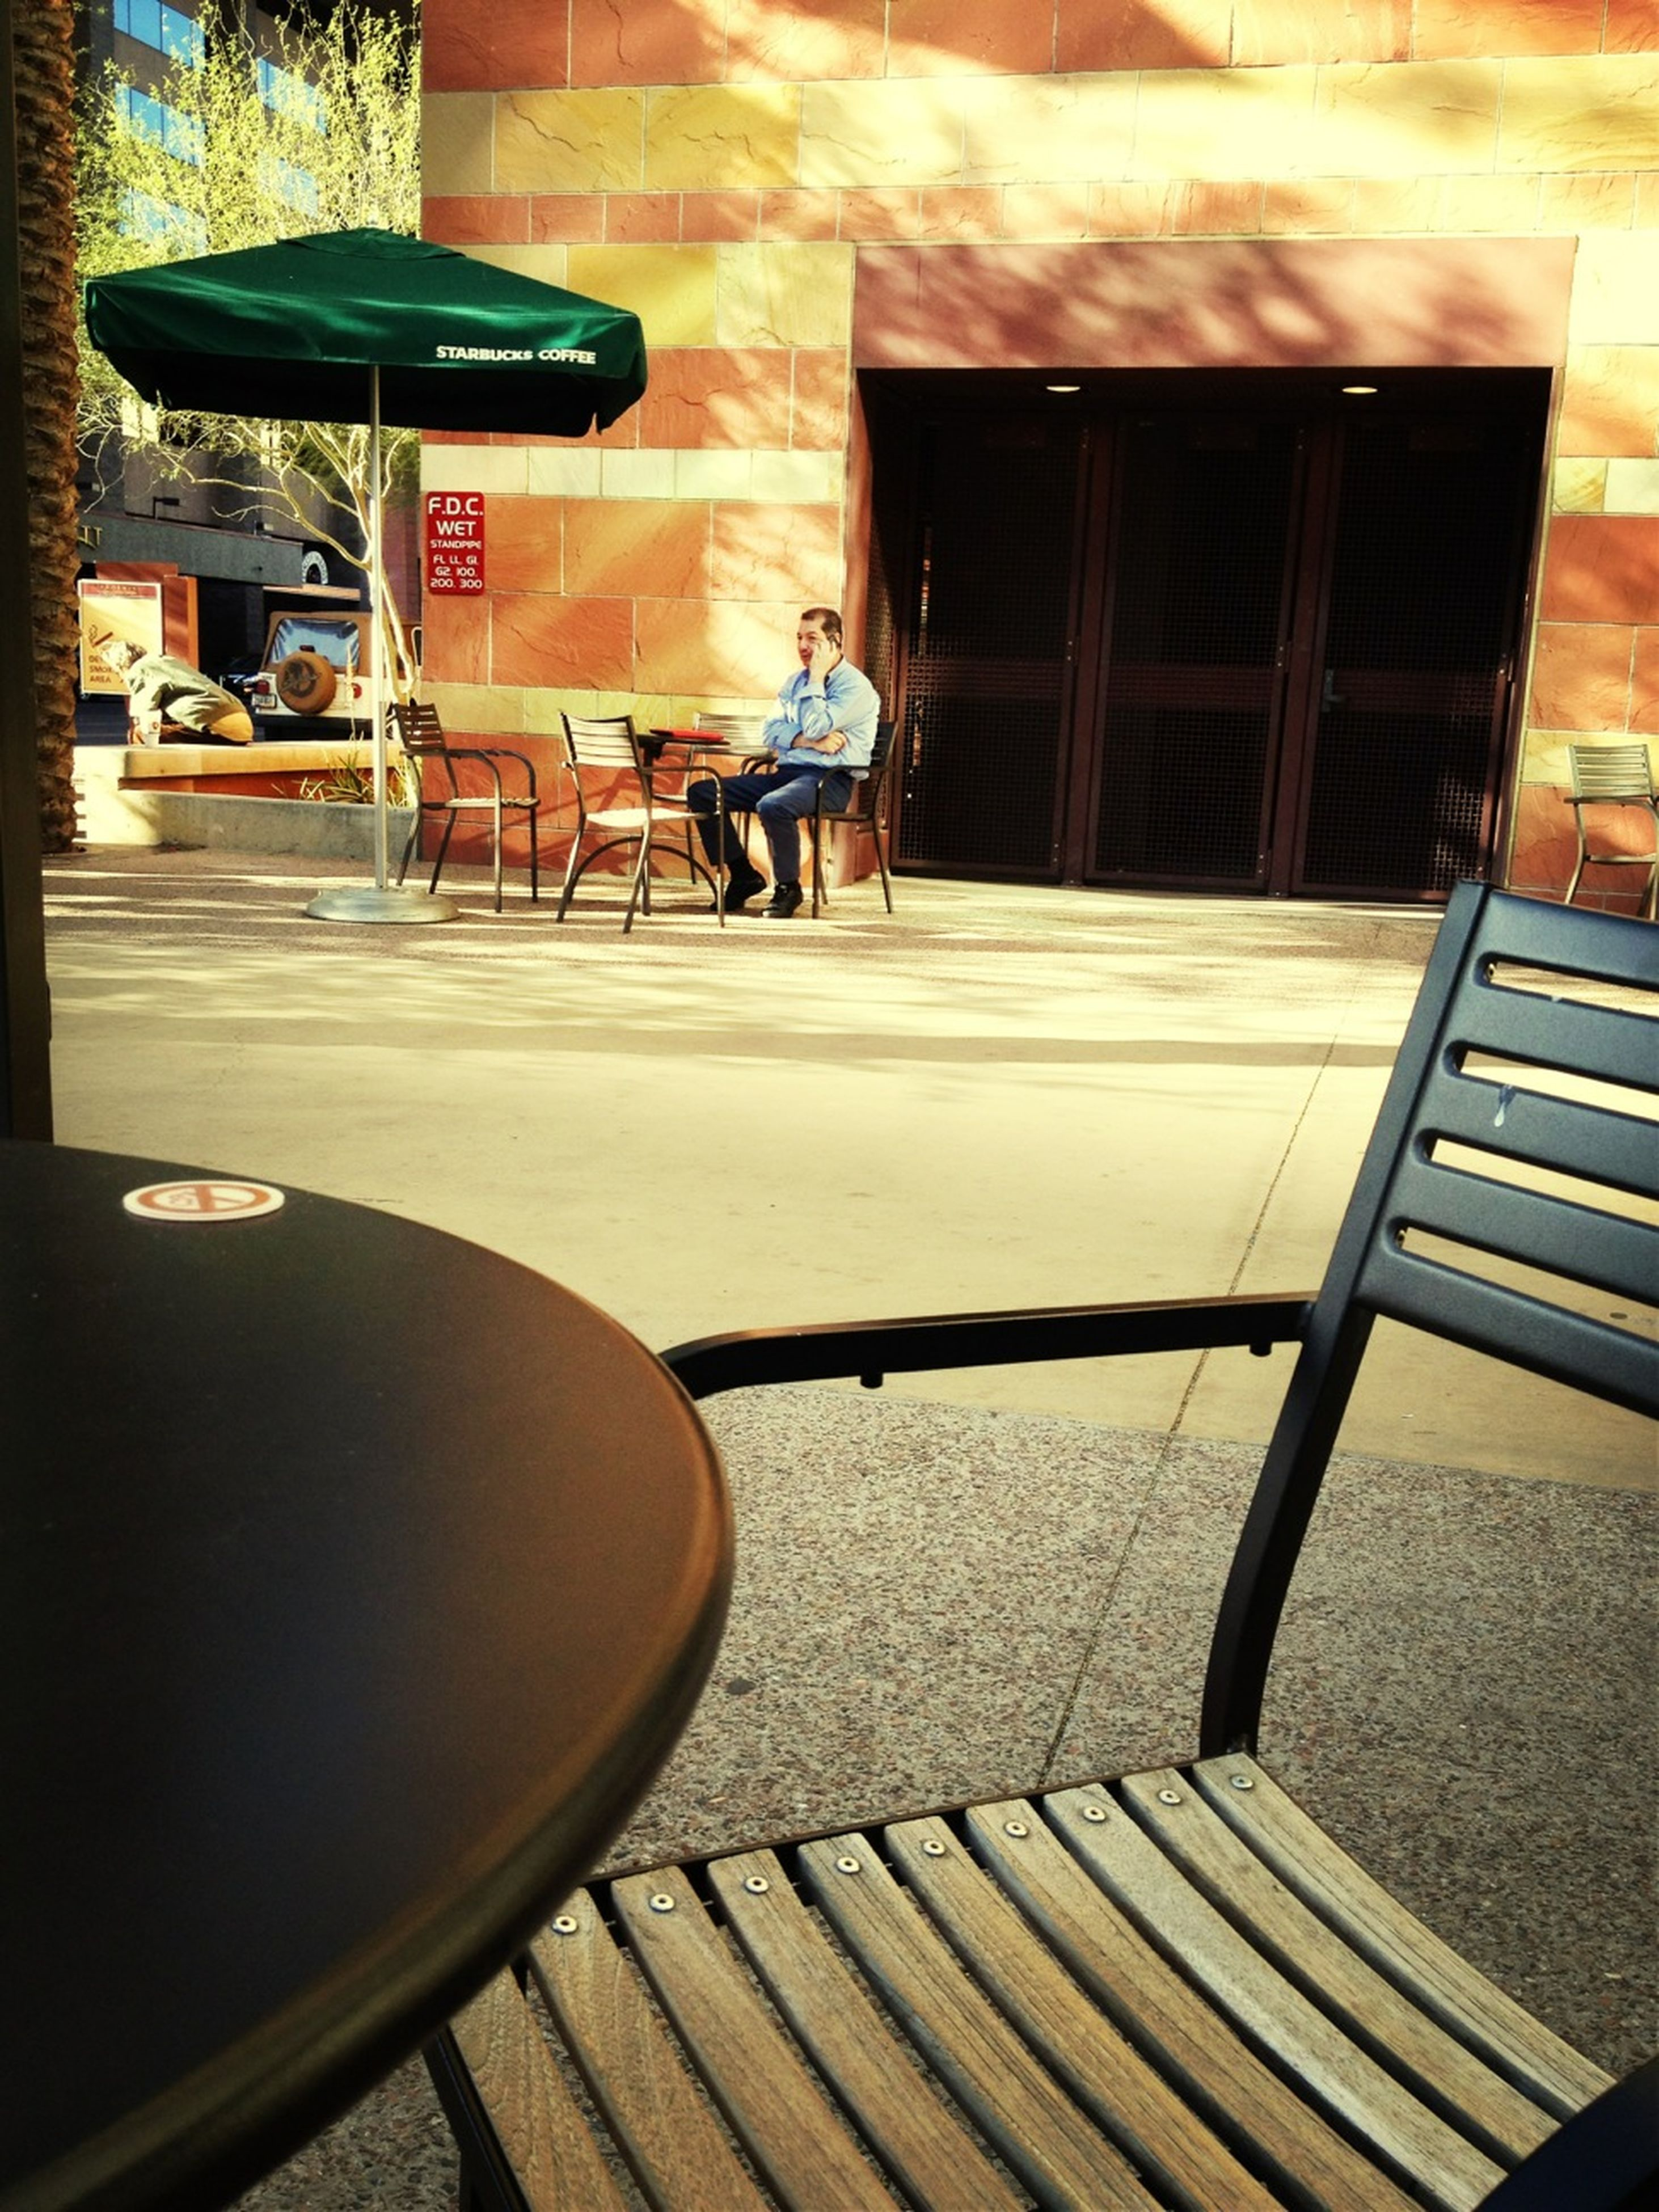 architecture, building exterior, built structure, chair, city, sunlight, street, table, empty, absence, shadow, building, day, sidewalk cafe, outdoors, incidental people, no people, restaurant, sidewalk, high angle view